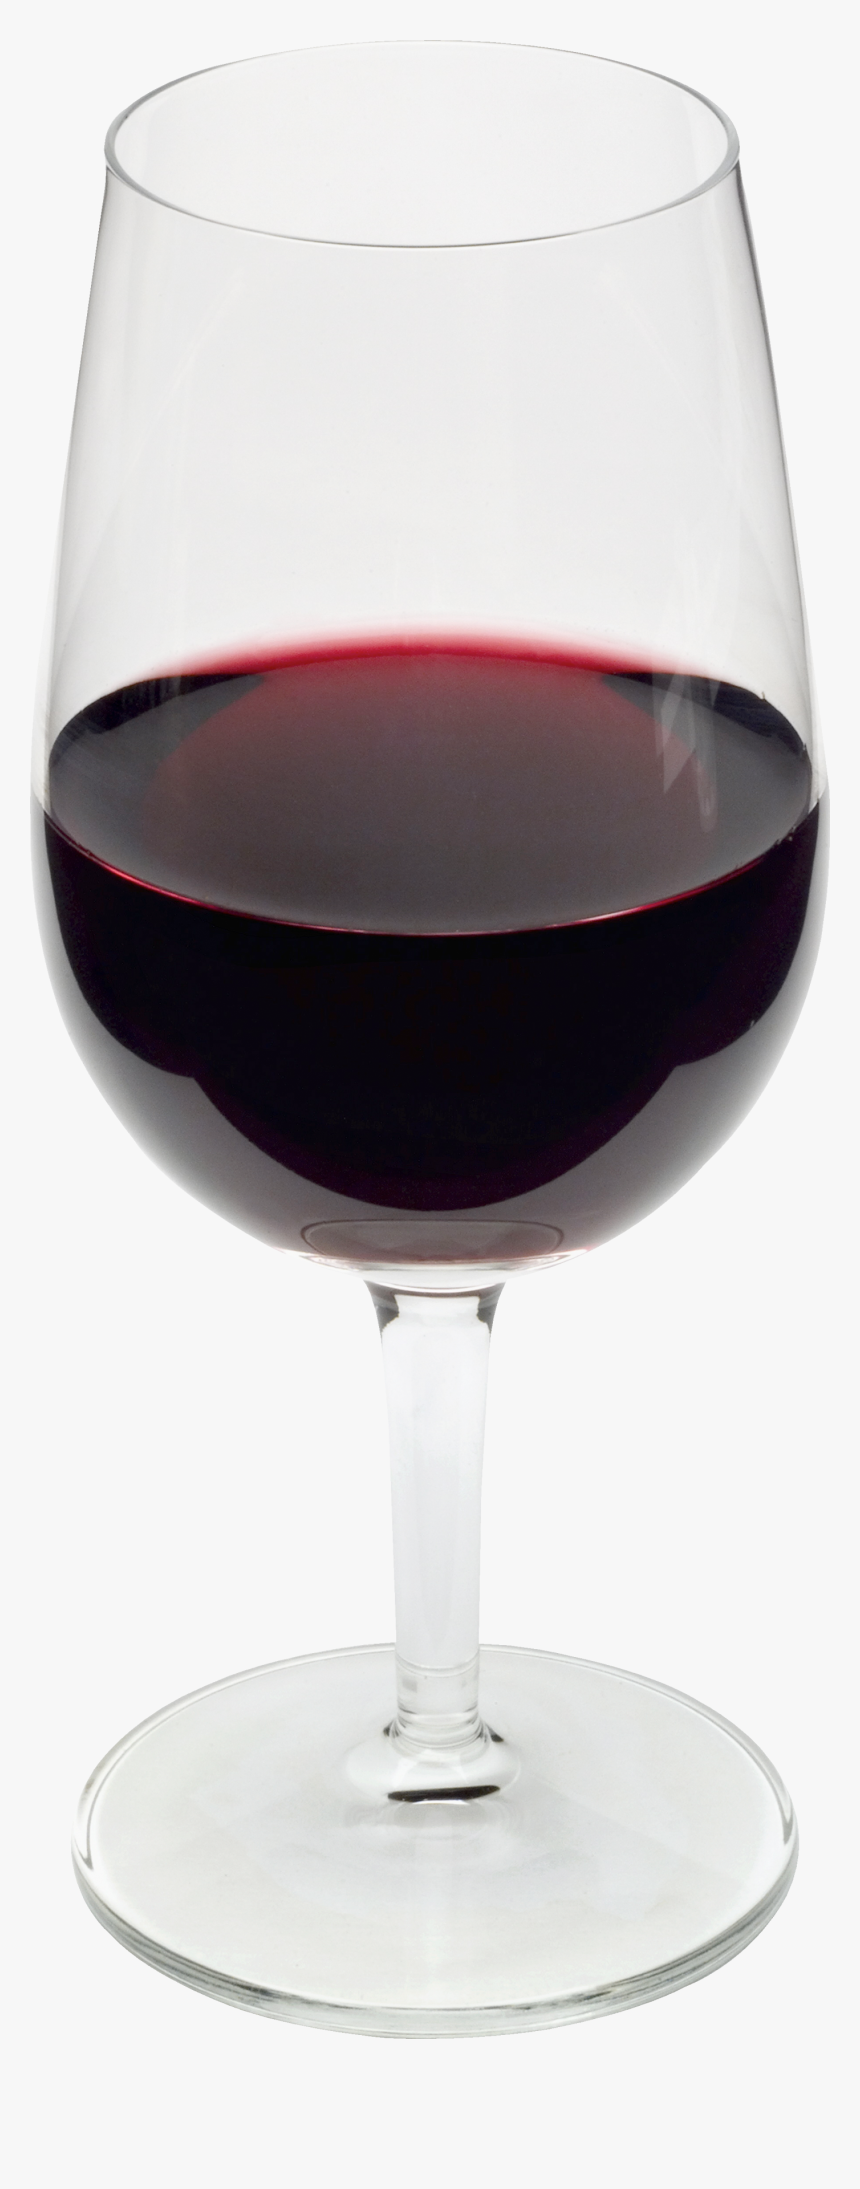 Red Wine Wine Glass - Red Wine Png Translucent Glass, Transparent Png, Free Download